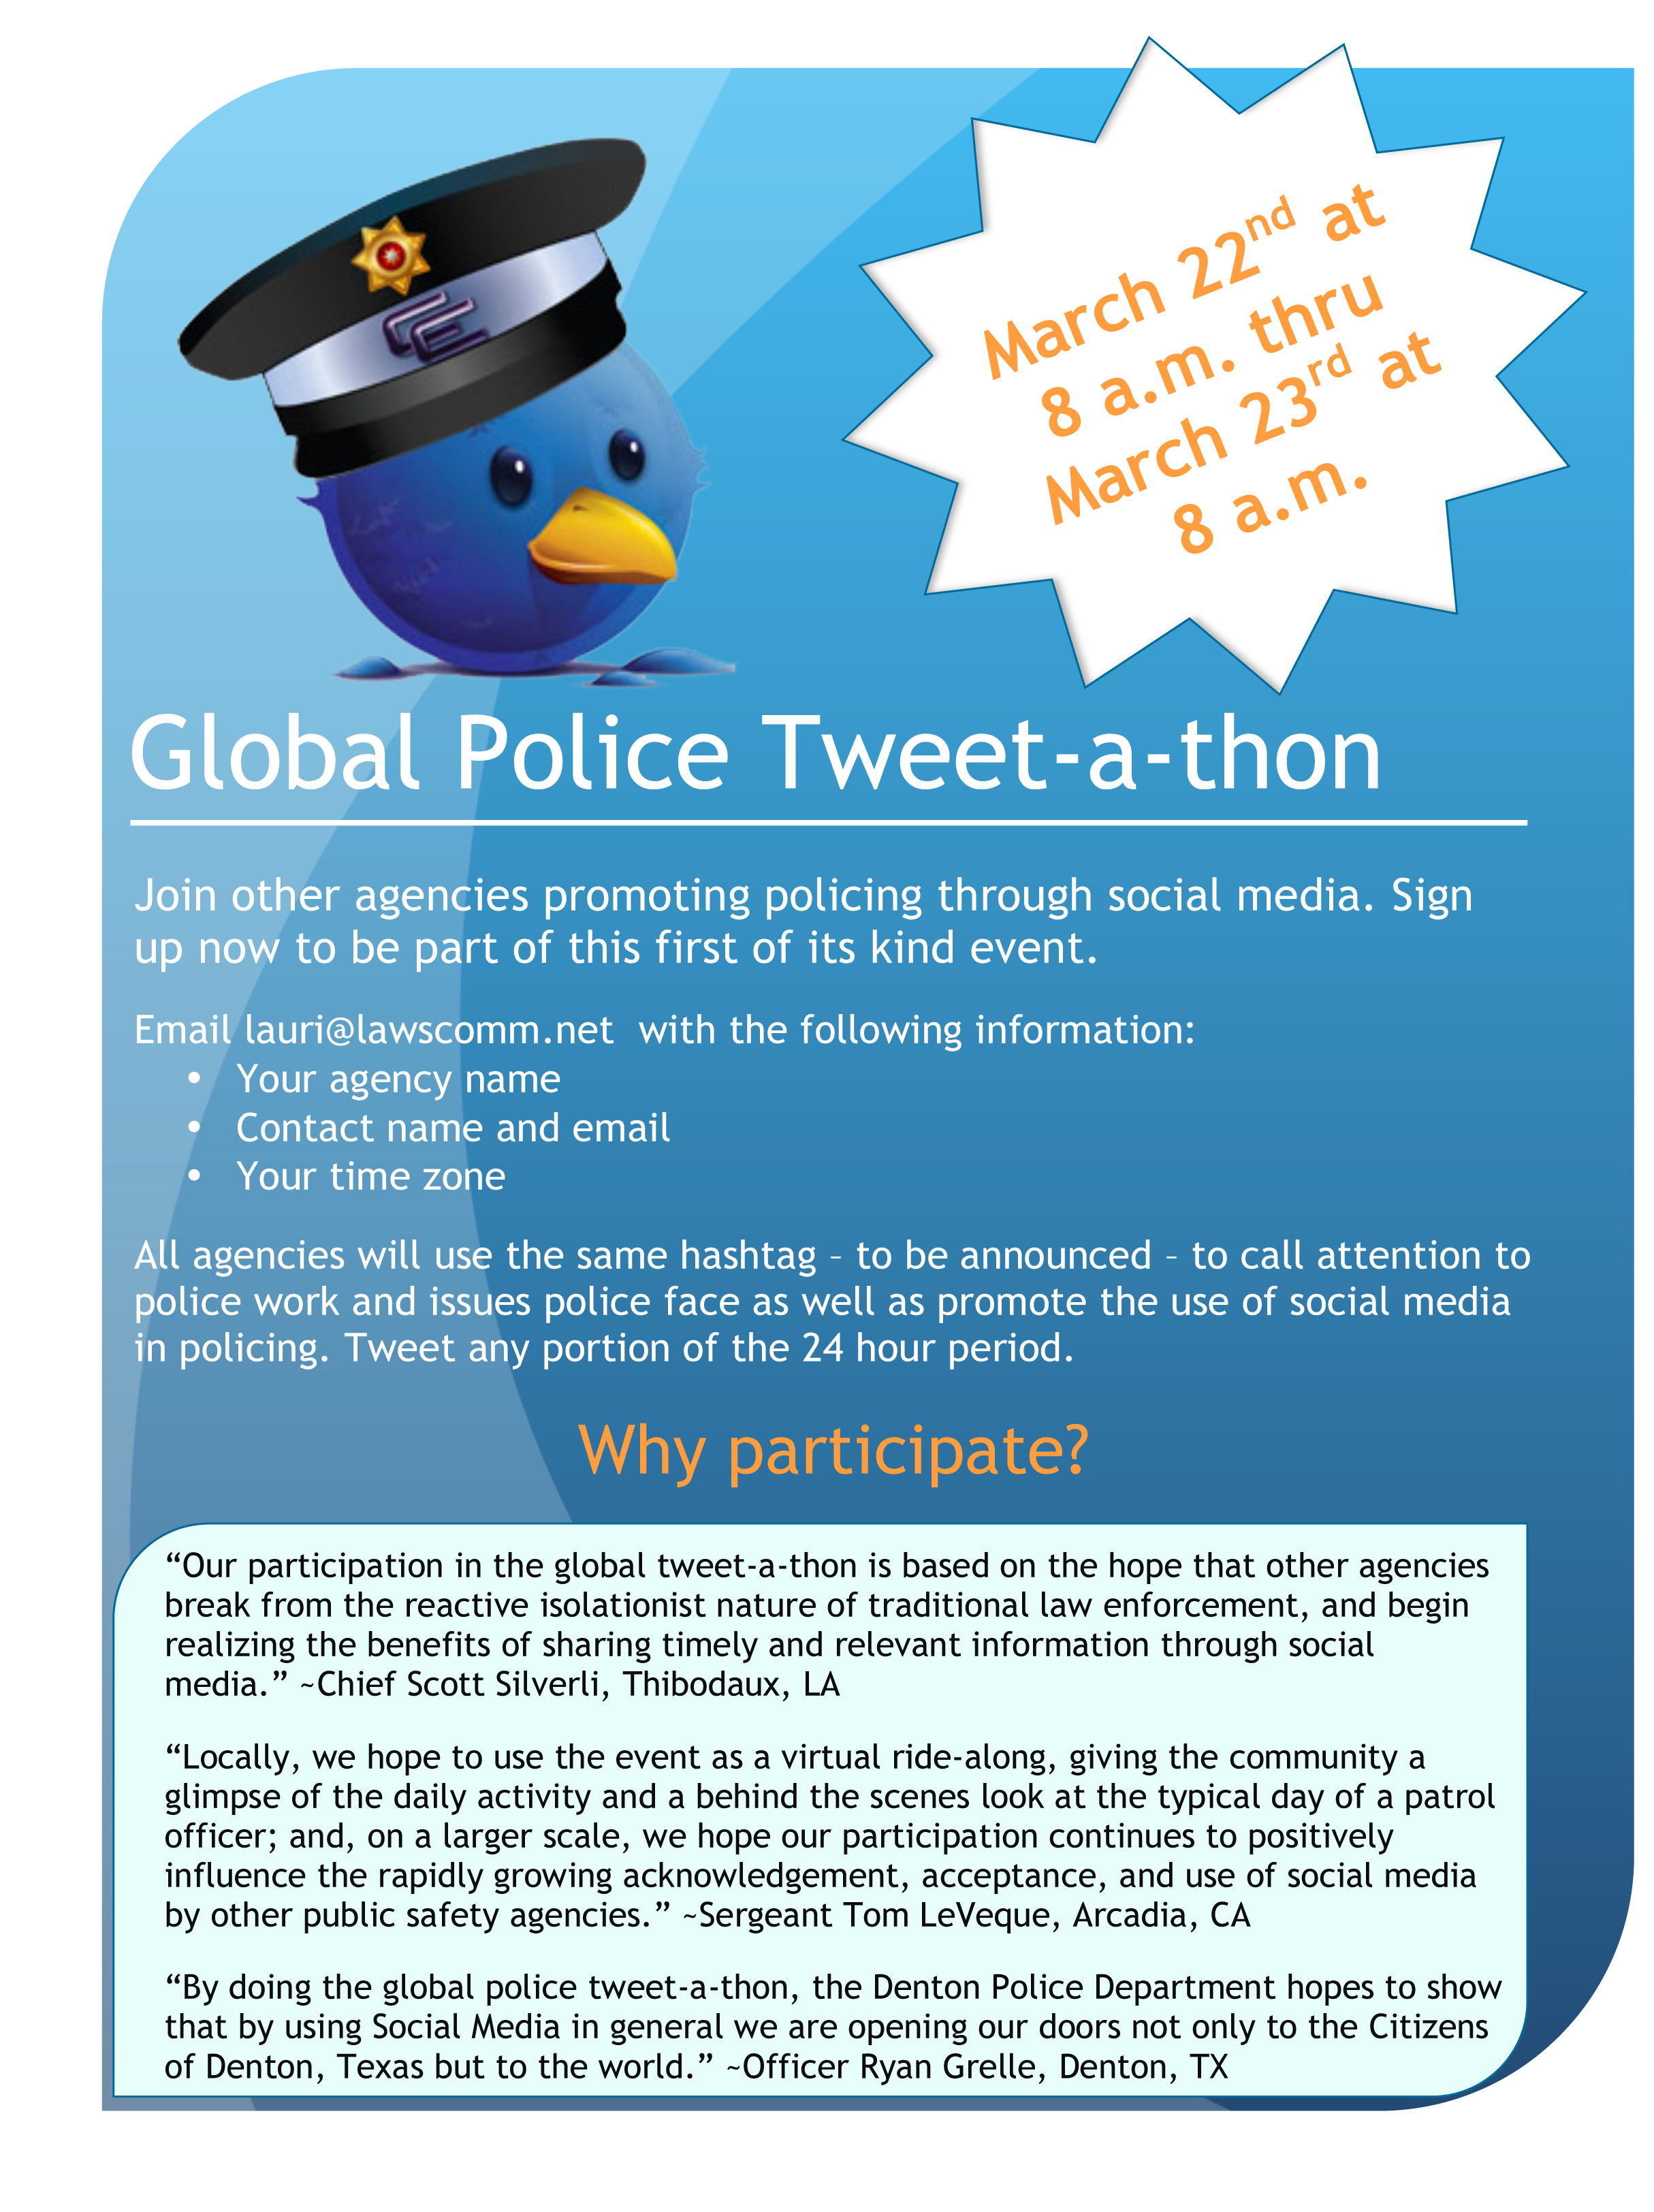 Global Police Tweet-a-thon